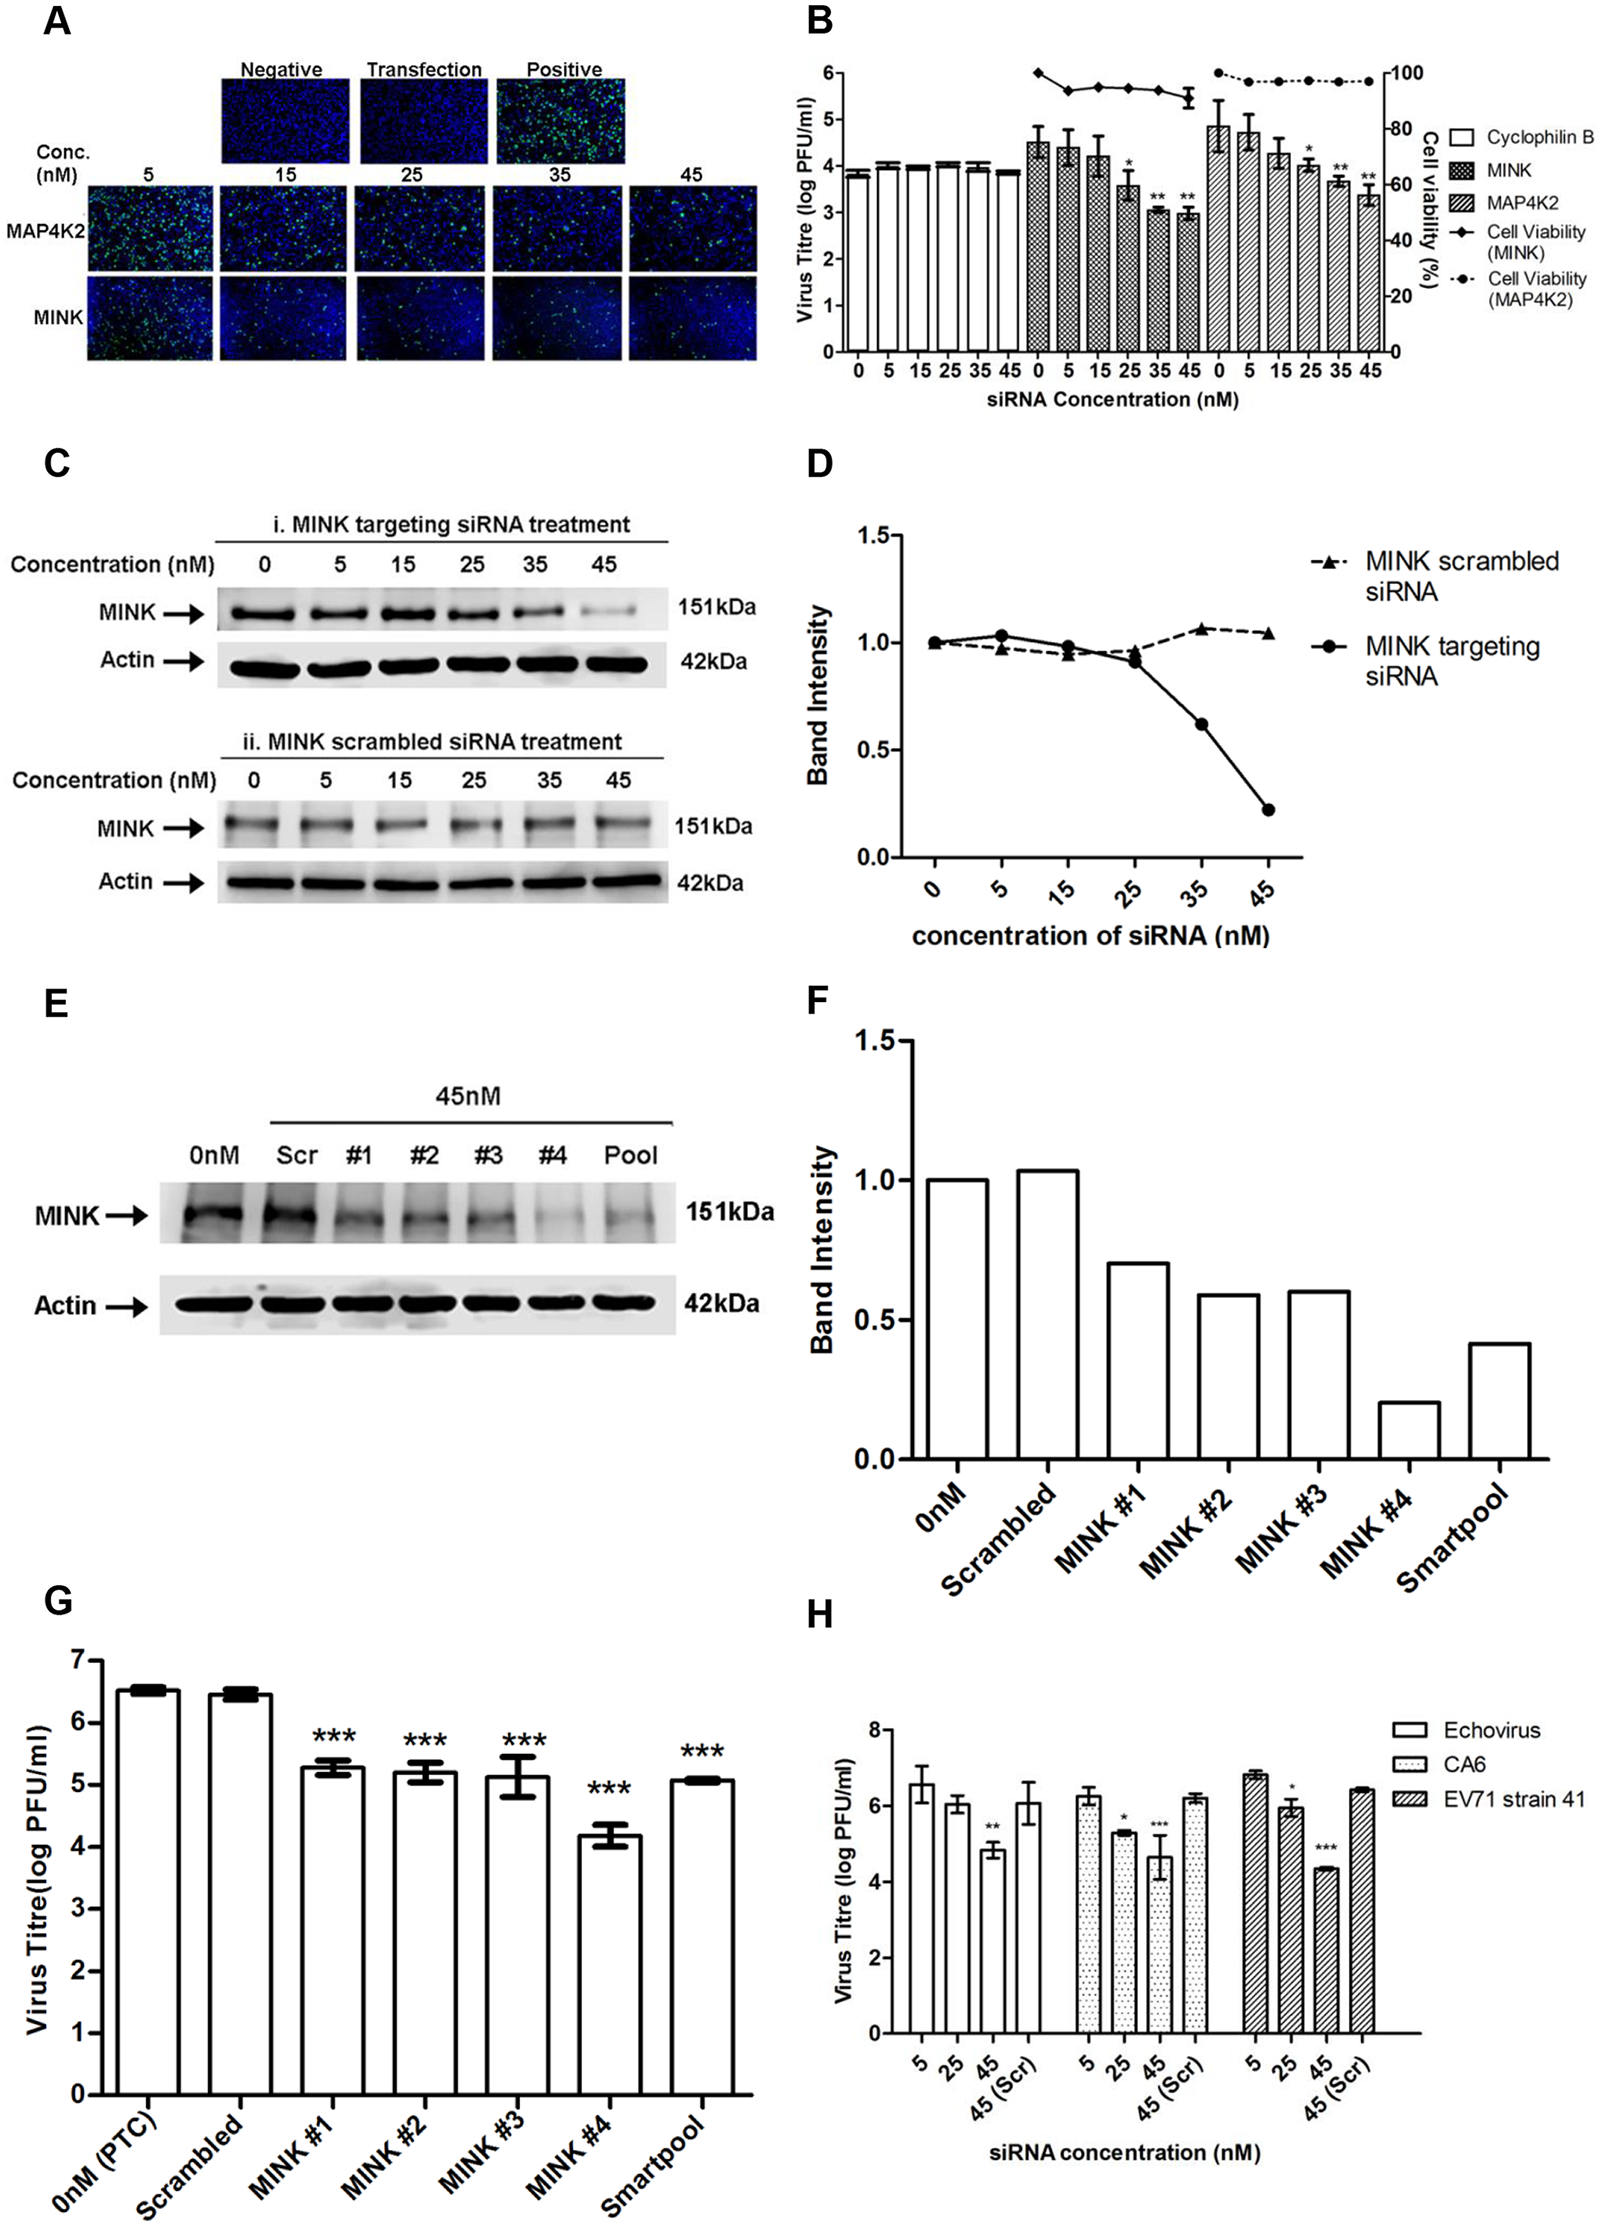 Silencing of MINK significantly reduced EV71 replication in a siRNA concentration-dependent manner.